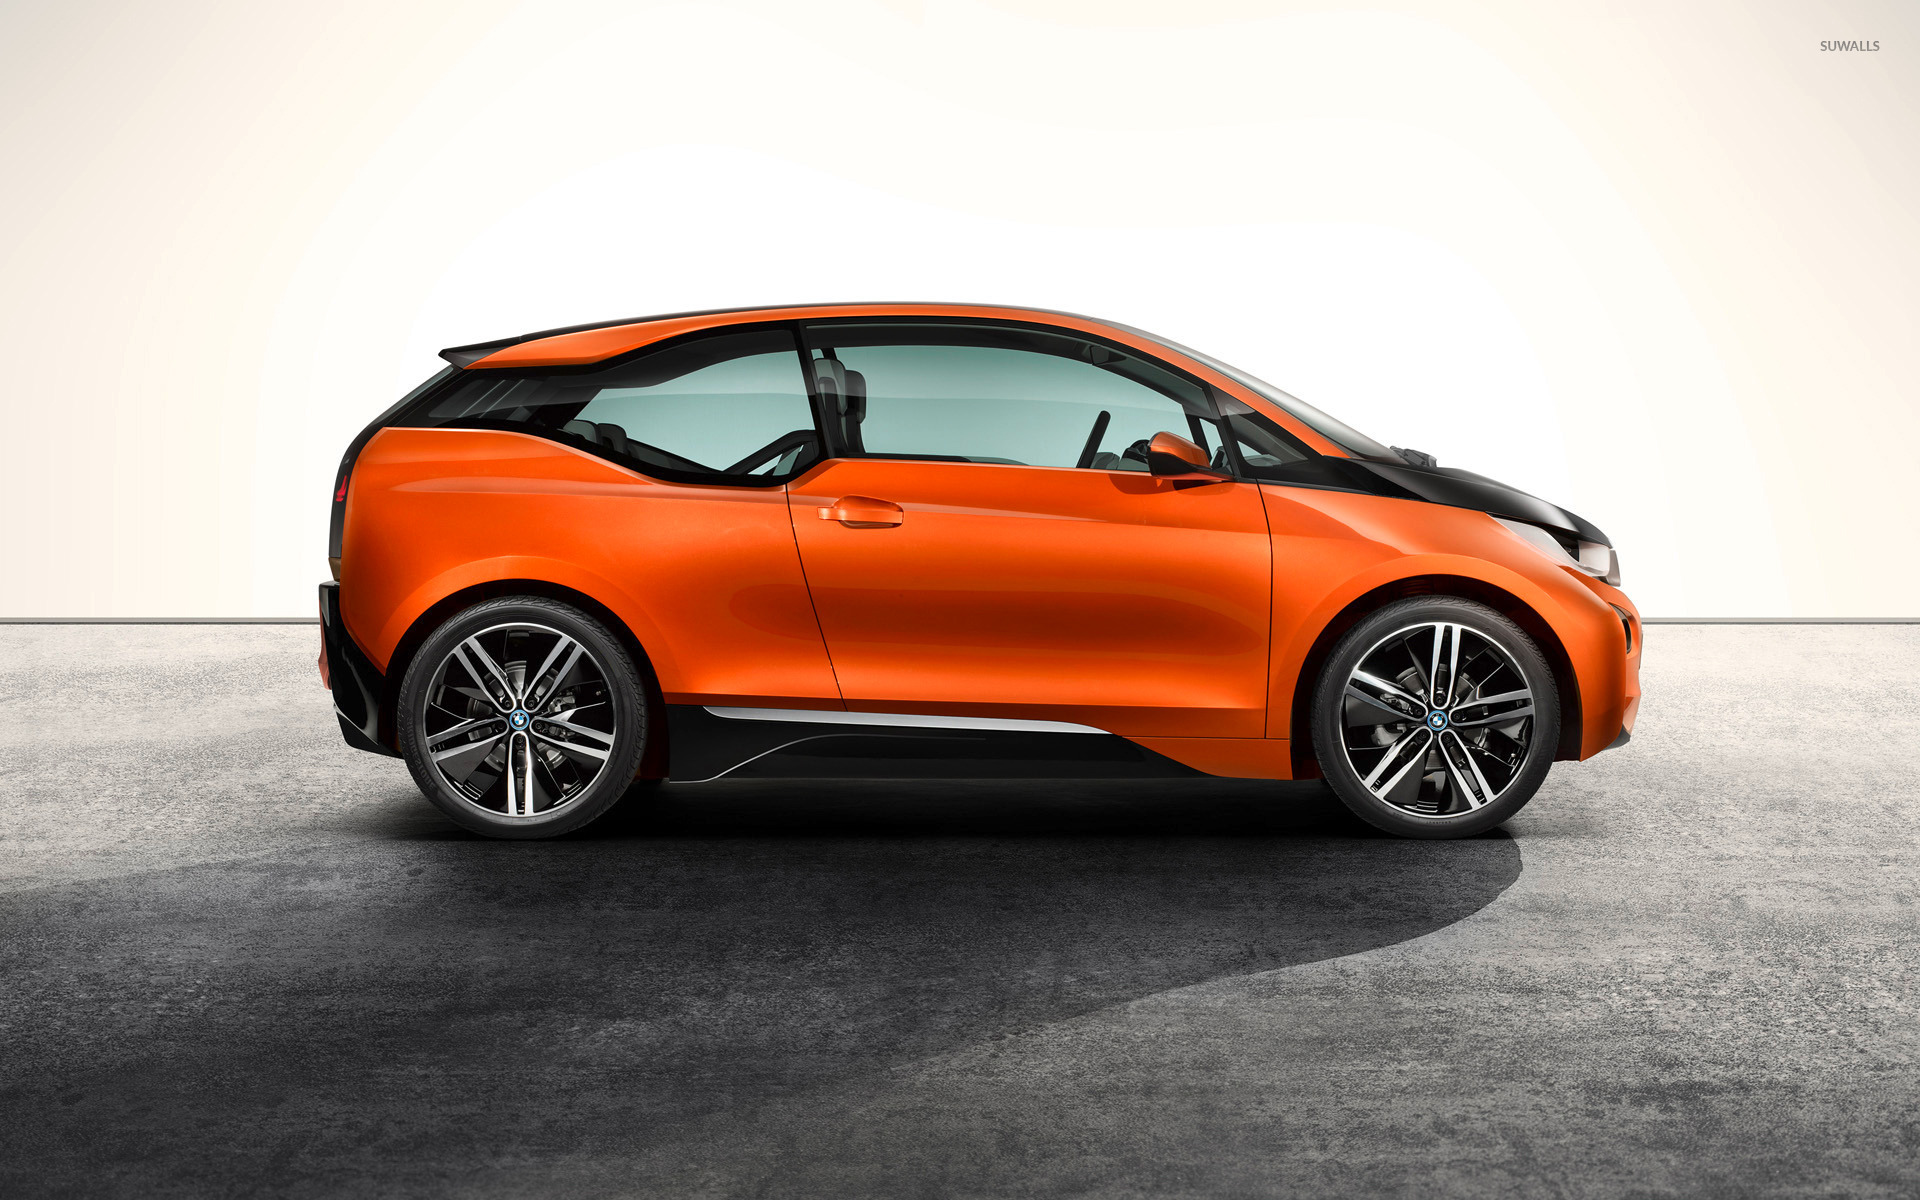 2019 BMW i3 Coupe Concept photo - 1